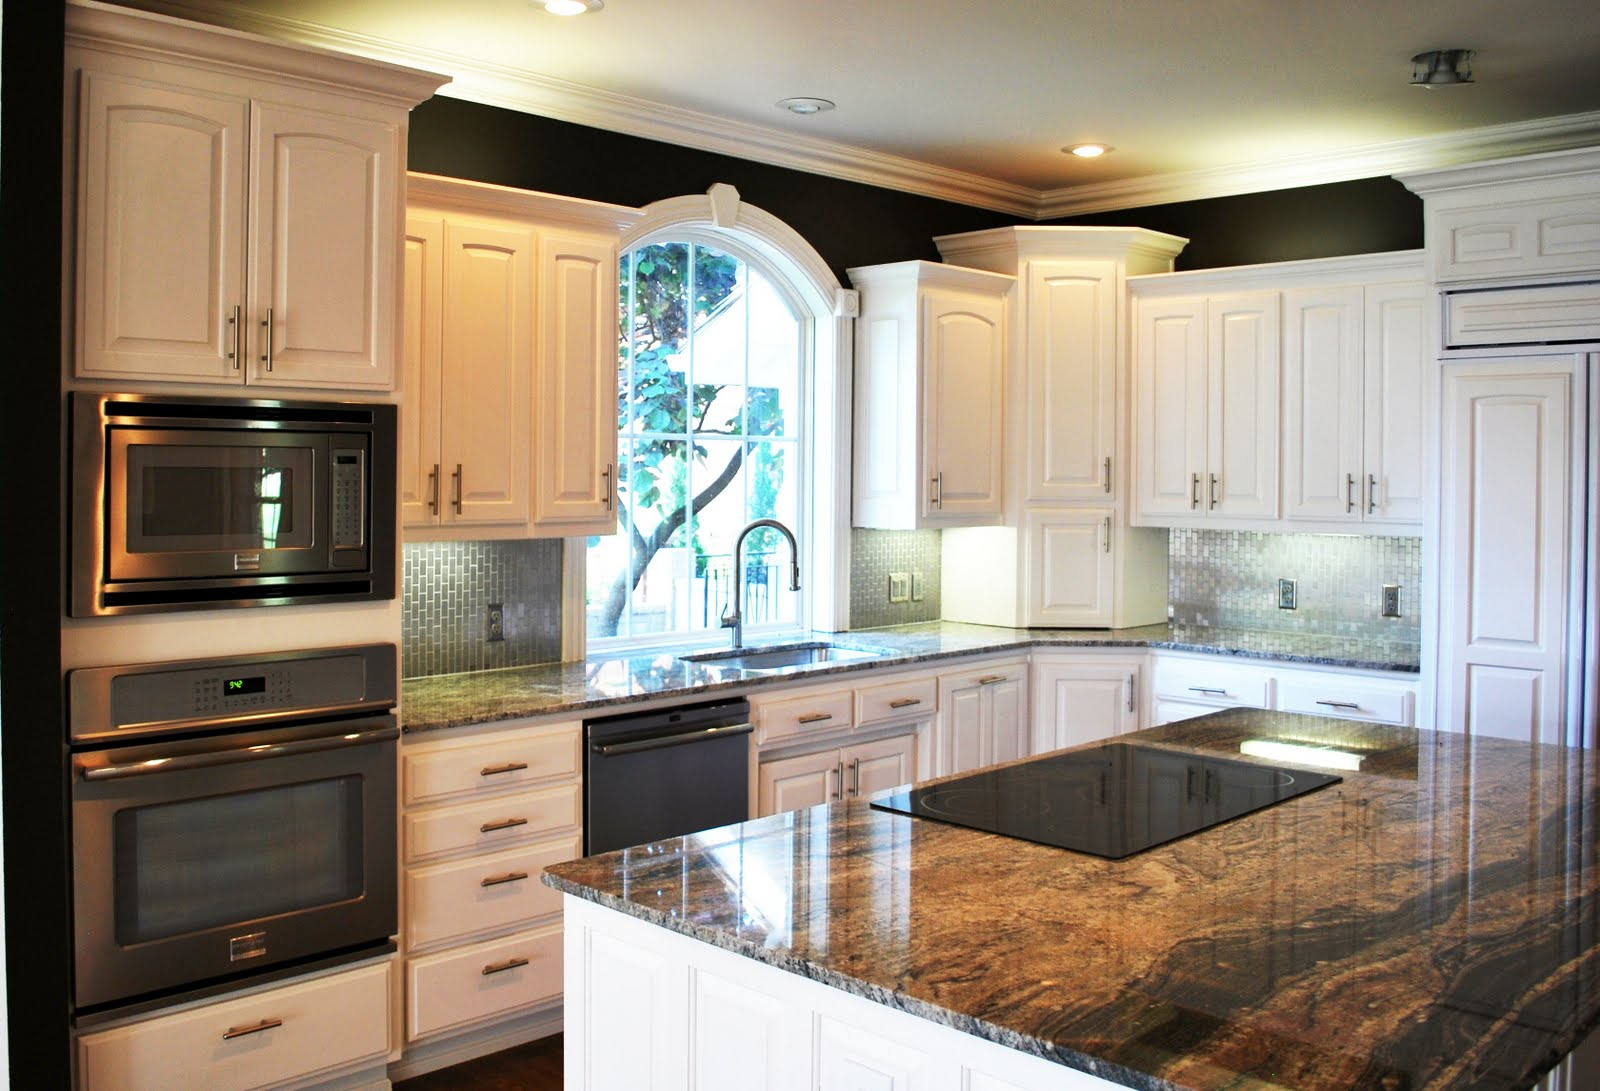 Sherwin-williams Countertop Paint Sherwin Williams Kitchen Cabinet Paint Colors